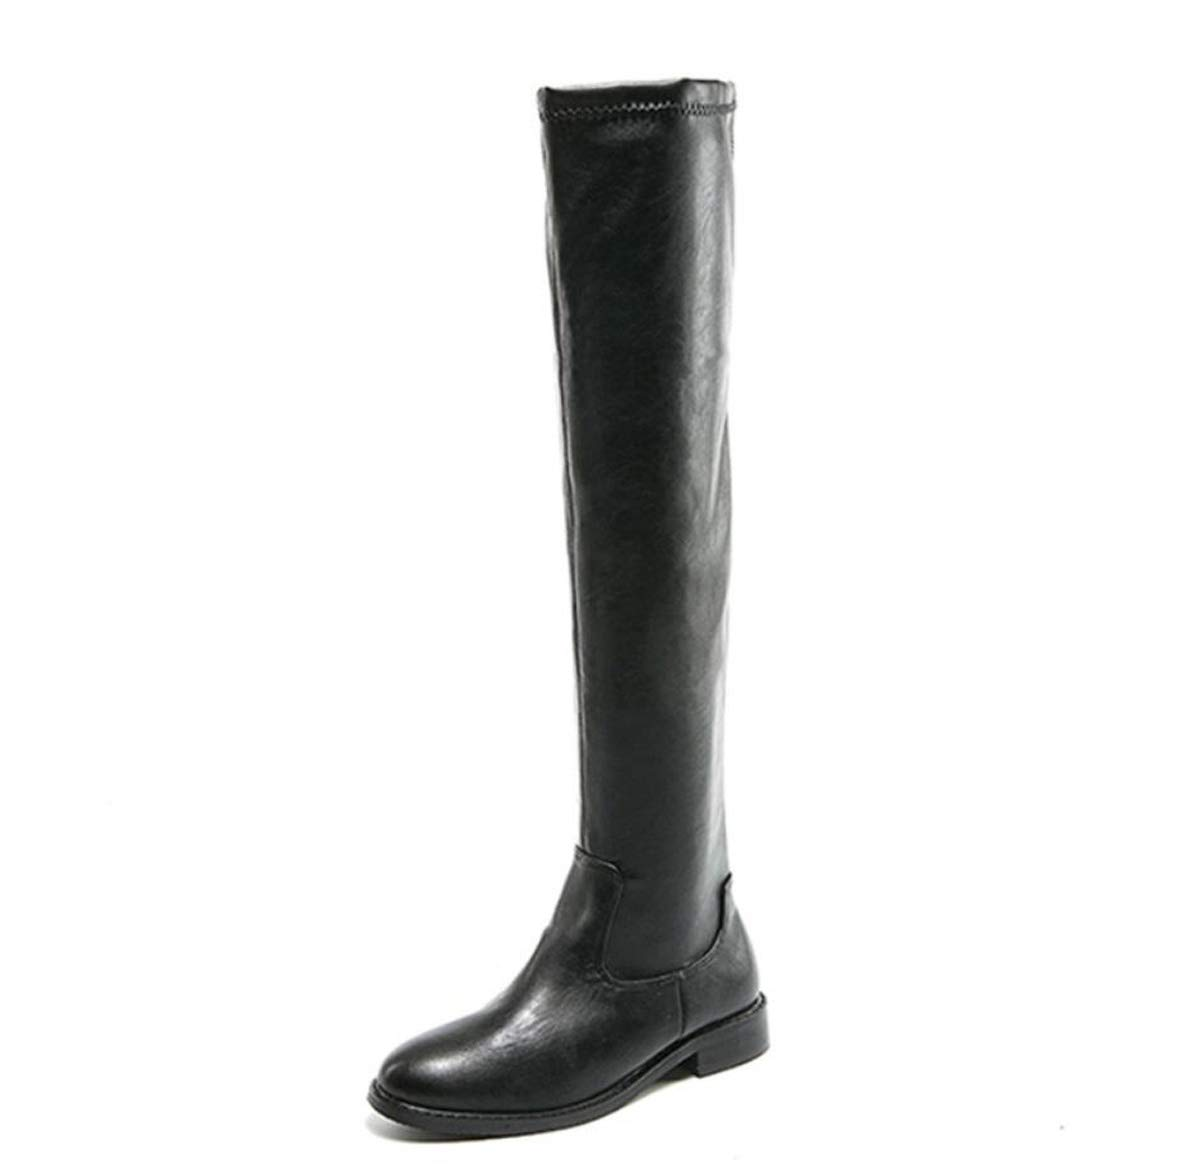 Black Womens Over Knee High Boots Flat Heel Martin Boots Ladies Buckle Fall Winter shoes